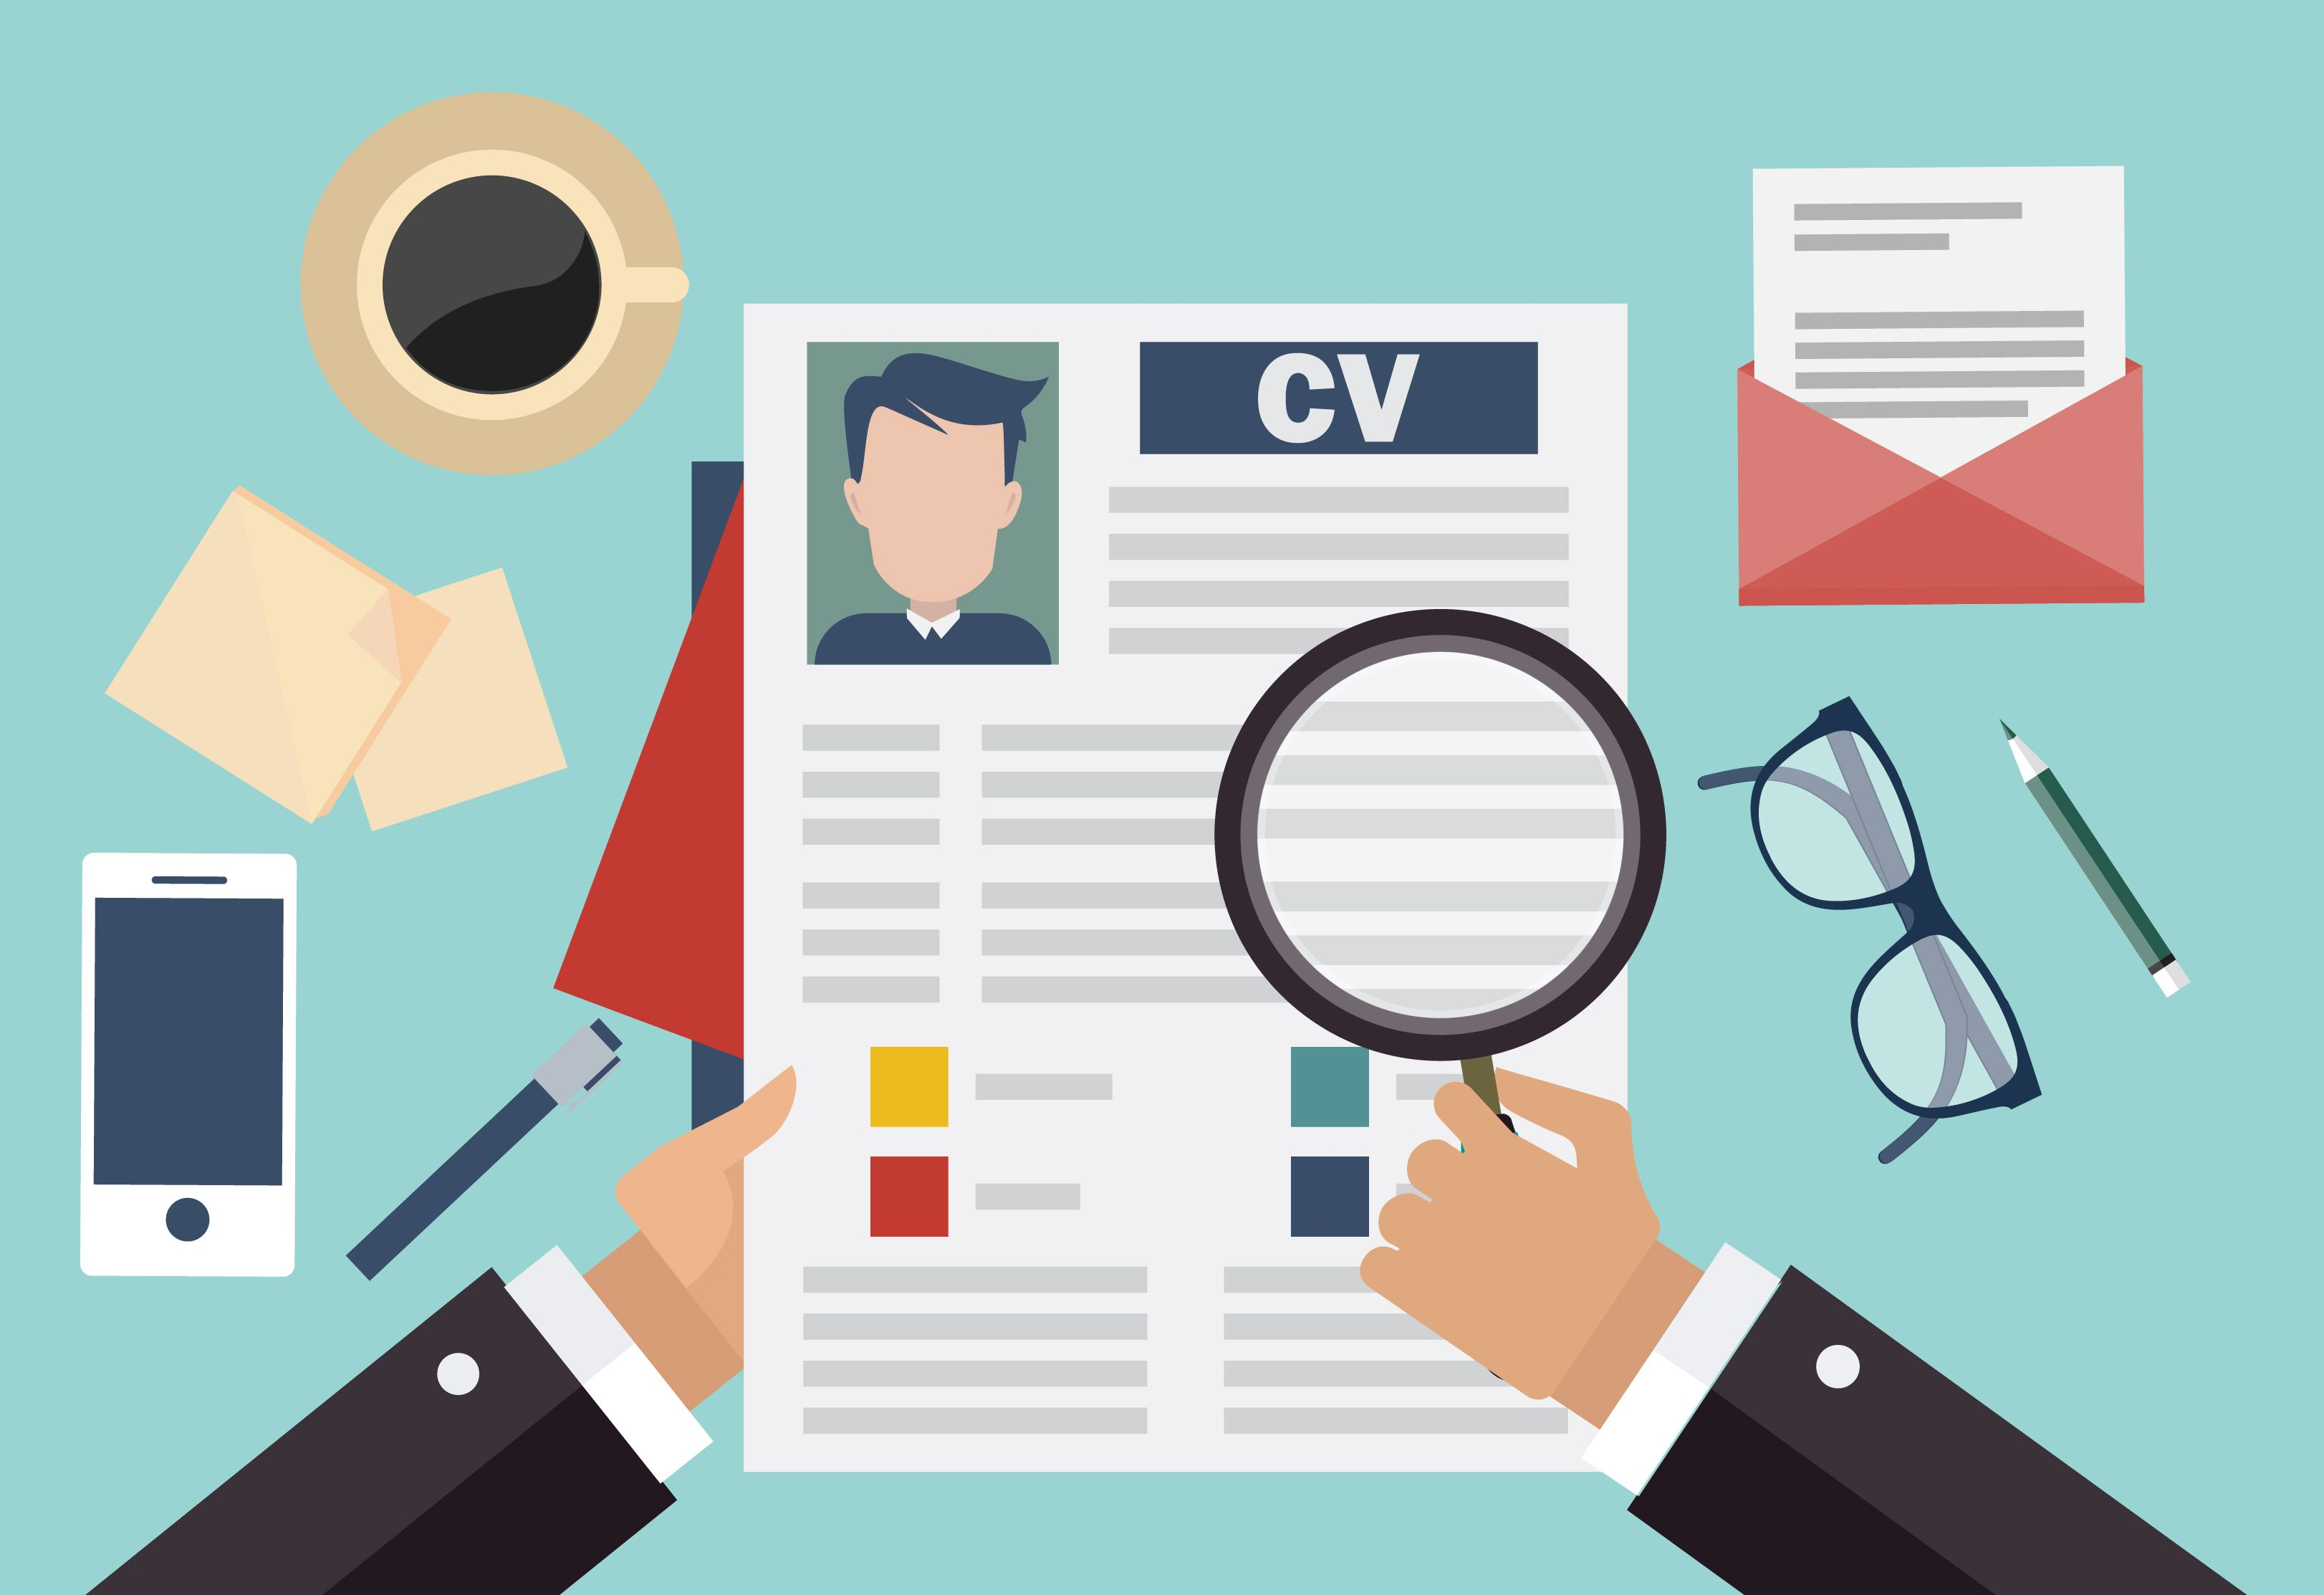 FREE CV REVIEW Have your CV reviewed and evaluated by an